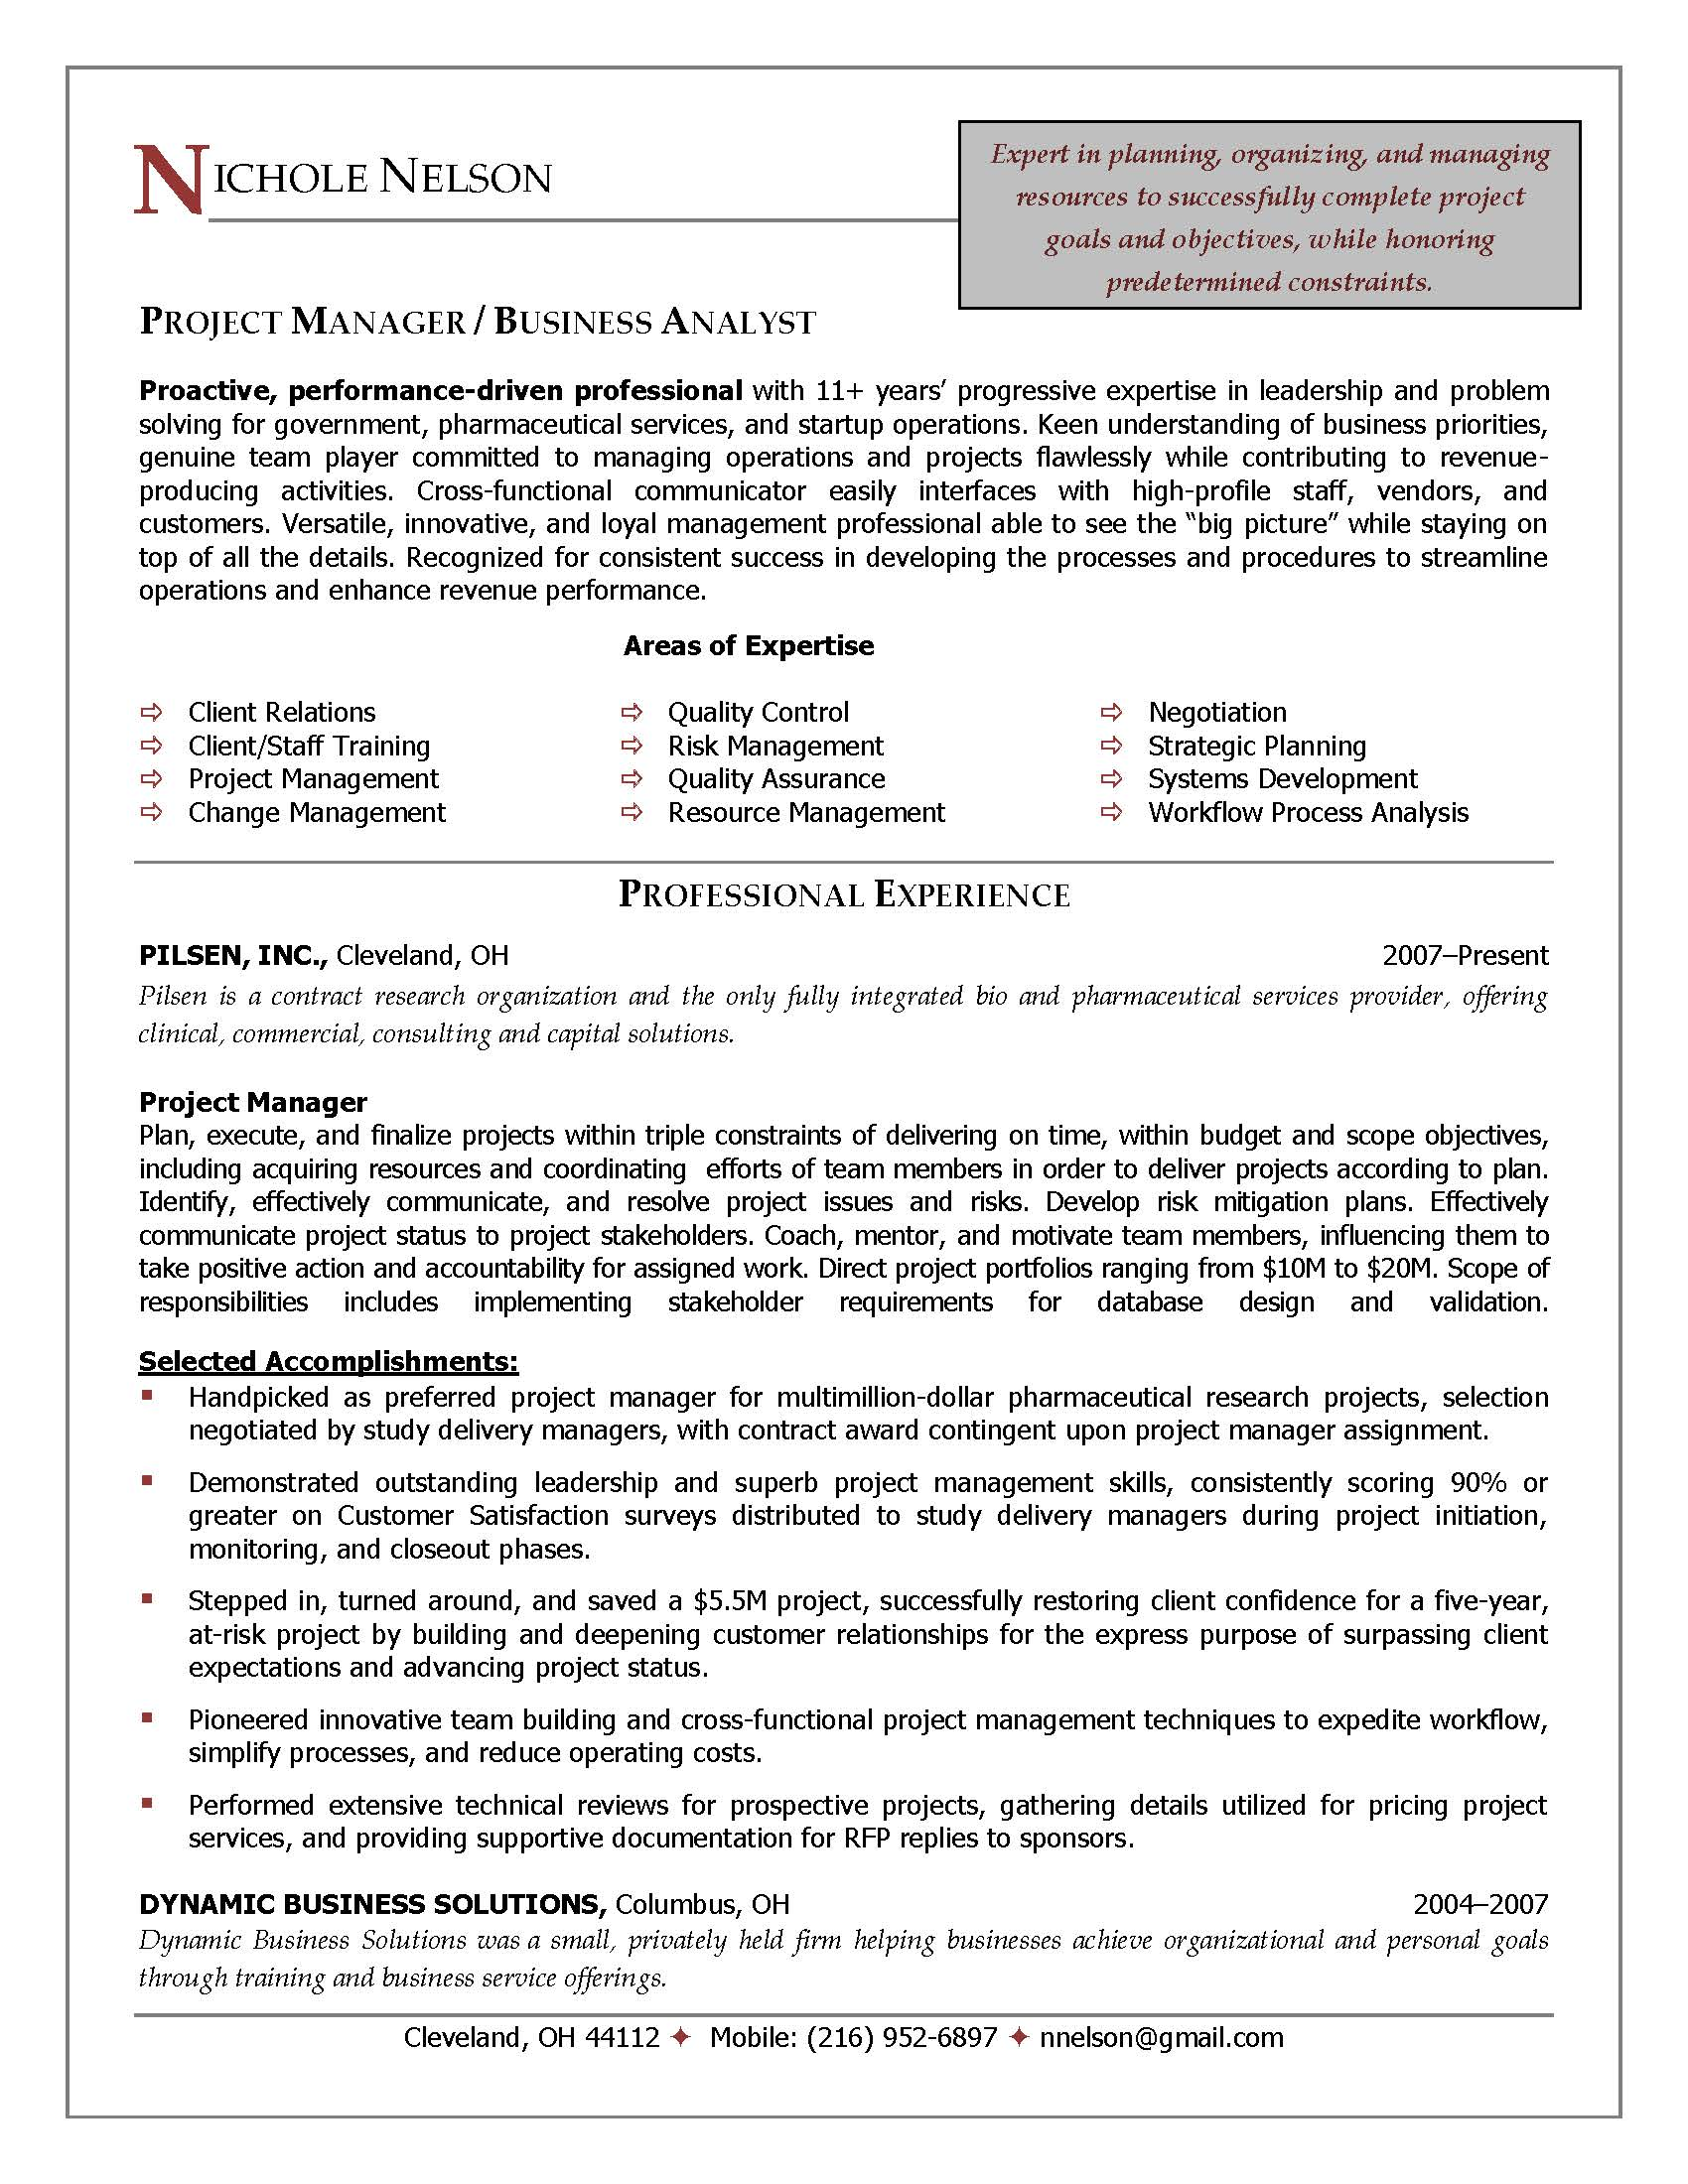 resume writing organizational skills customer service resume example resume writing organizational skills organizational skills for your resume monsterca manager resume sample provided by elite